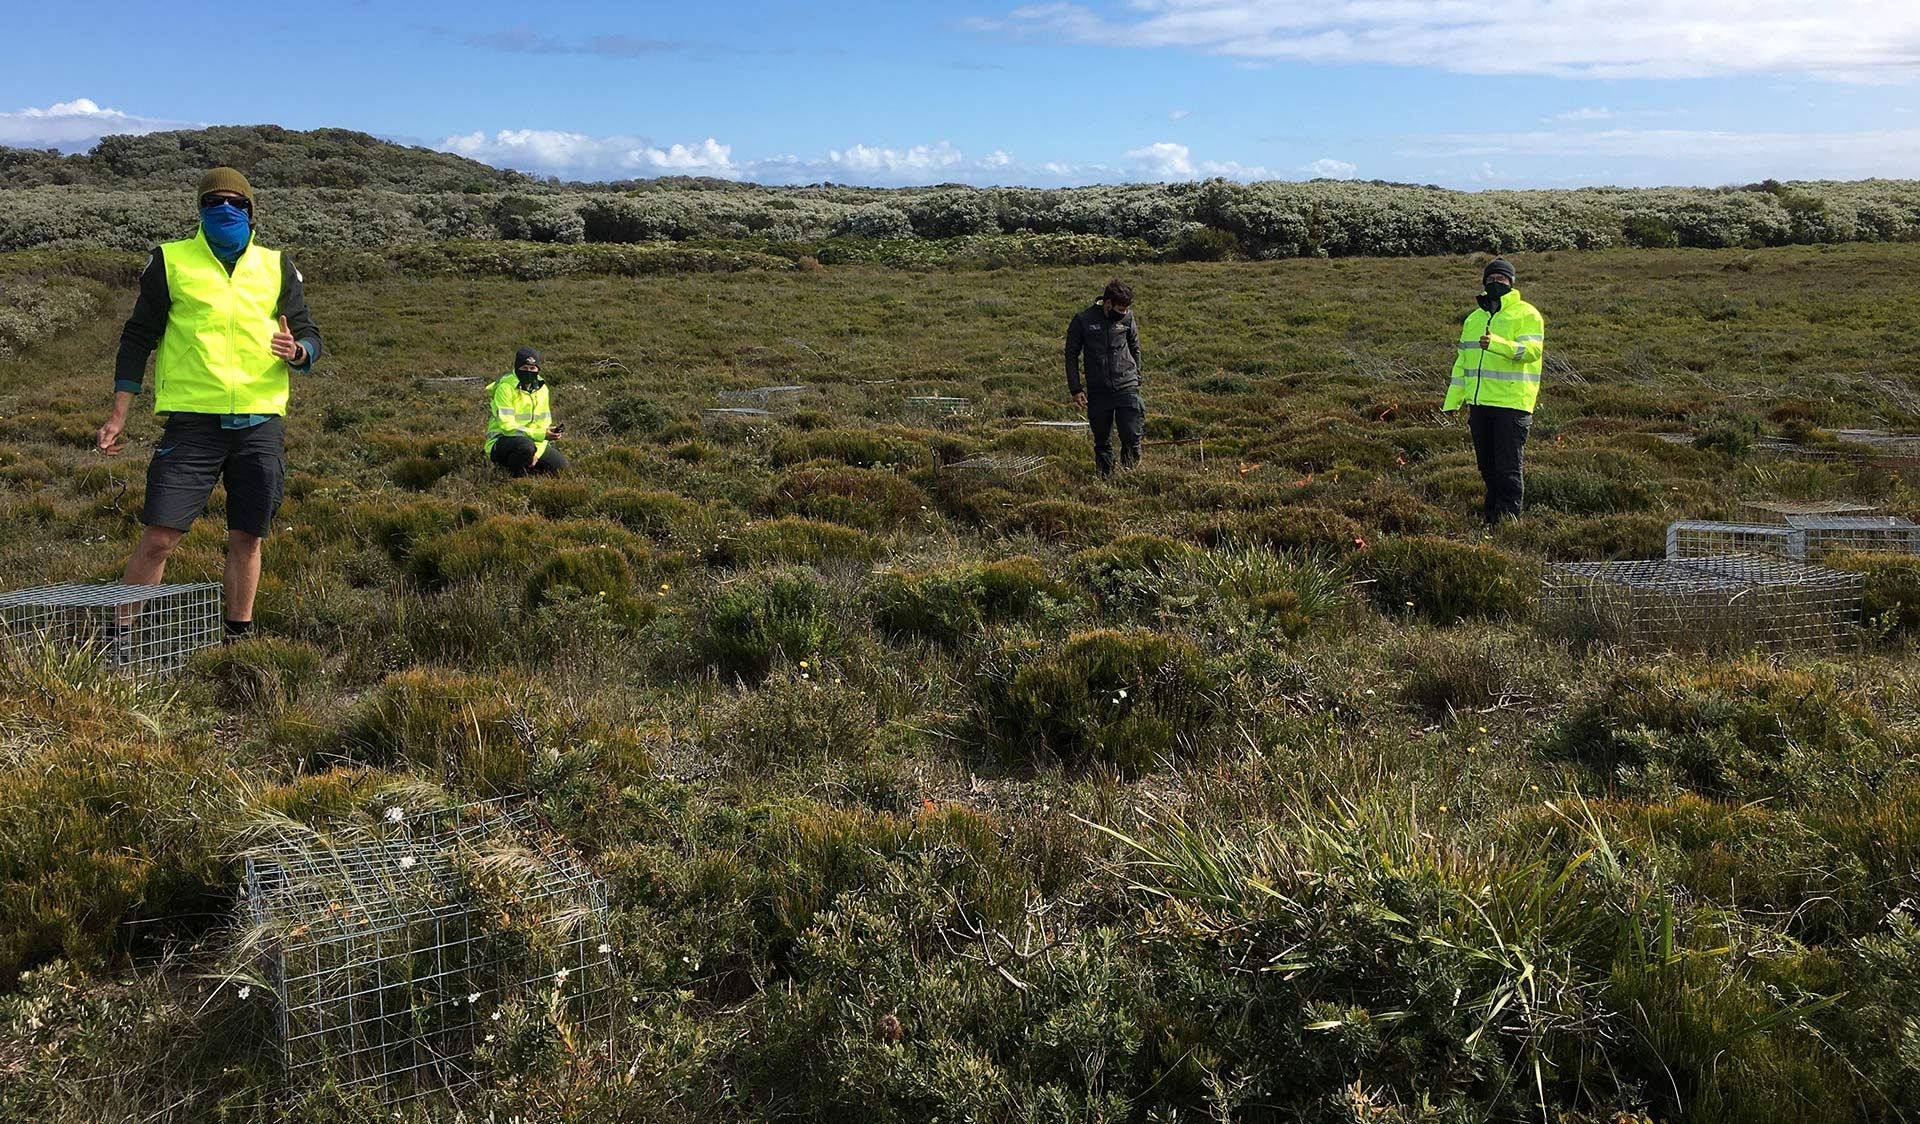 Parks Victoria staff in face masks and high-vis in a shrubby field, with cages around threatened Eastern Spider Orchids.